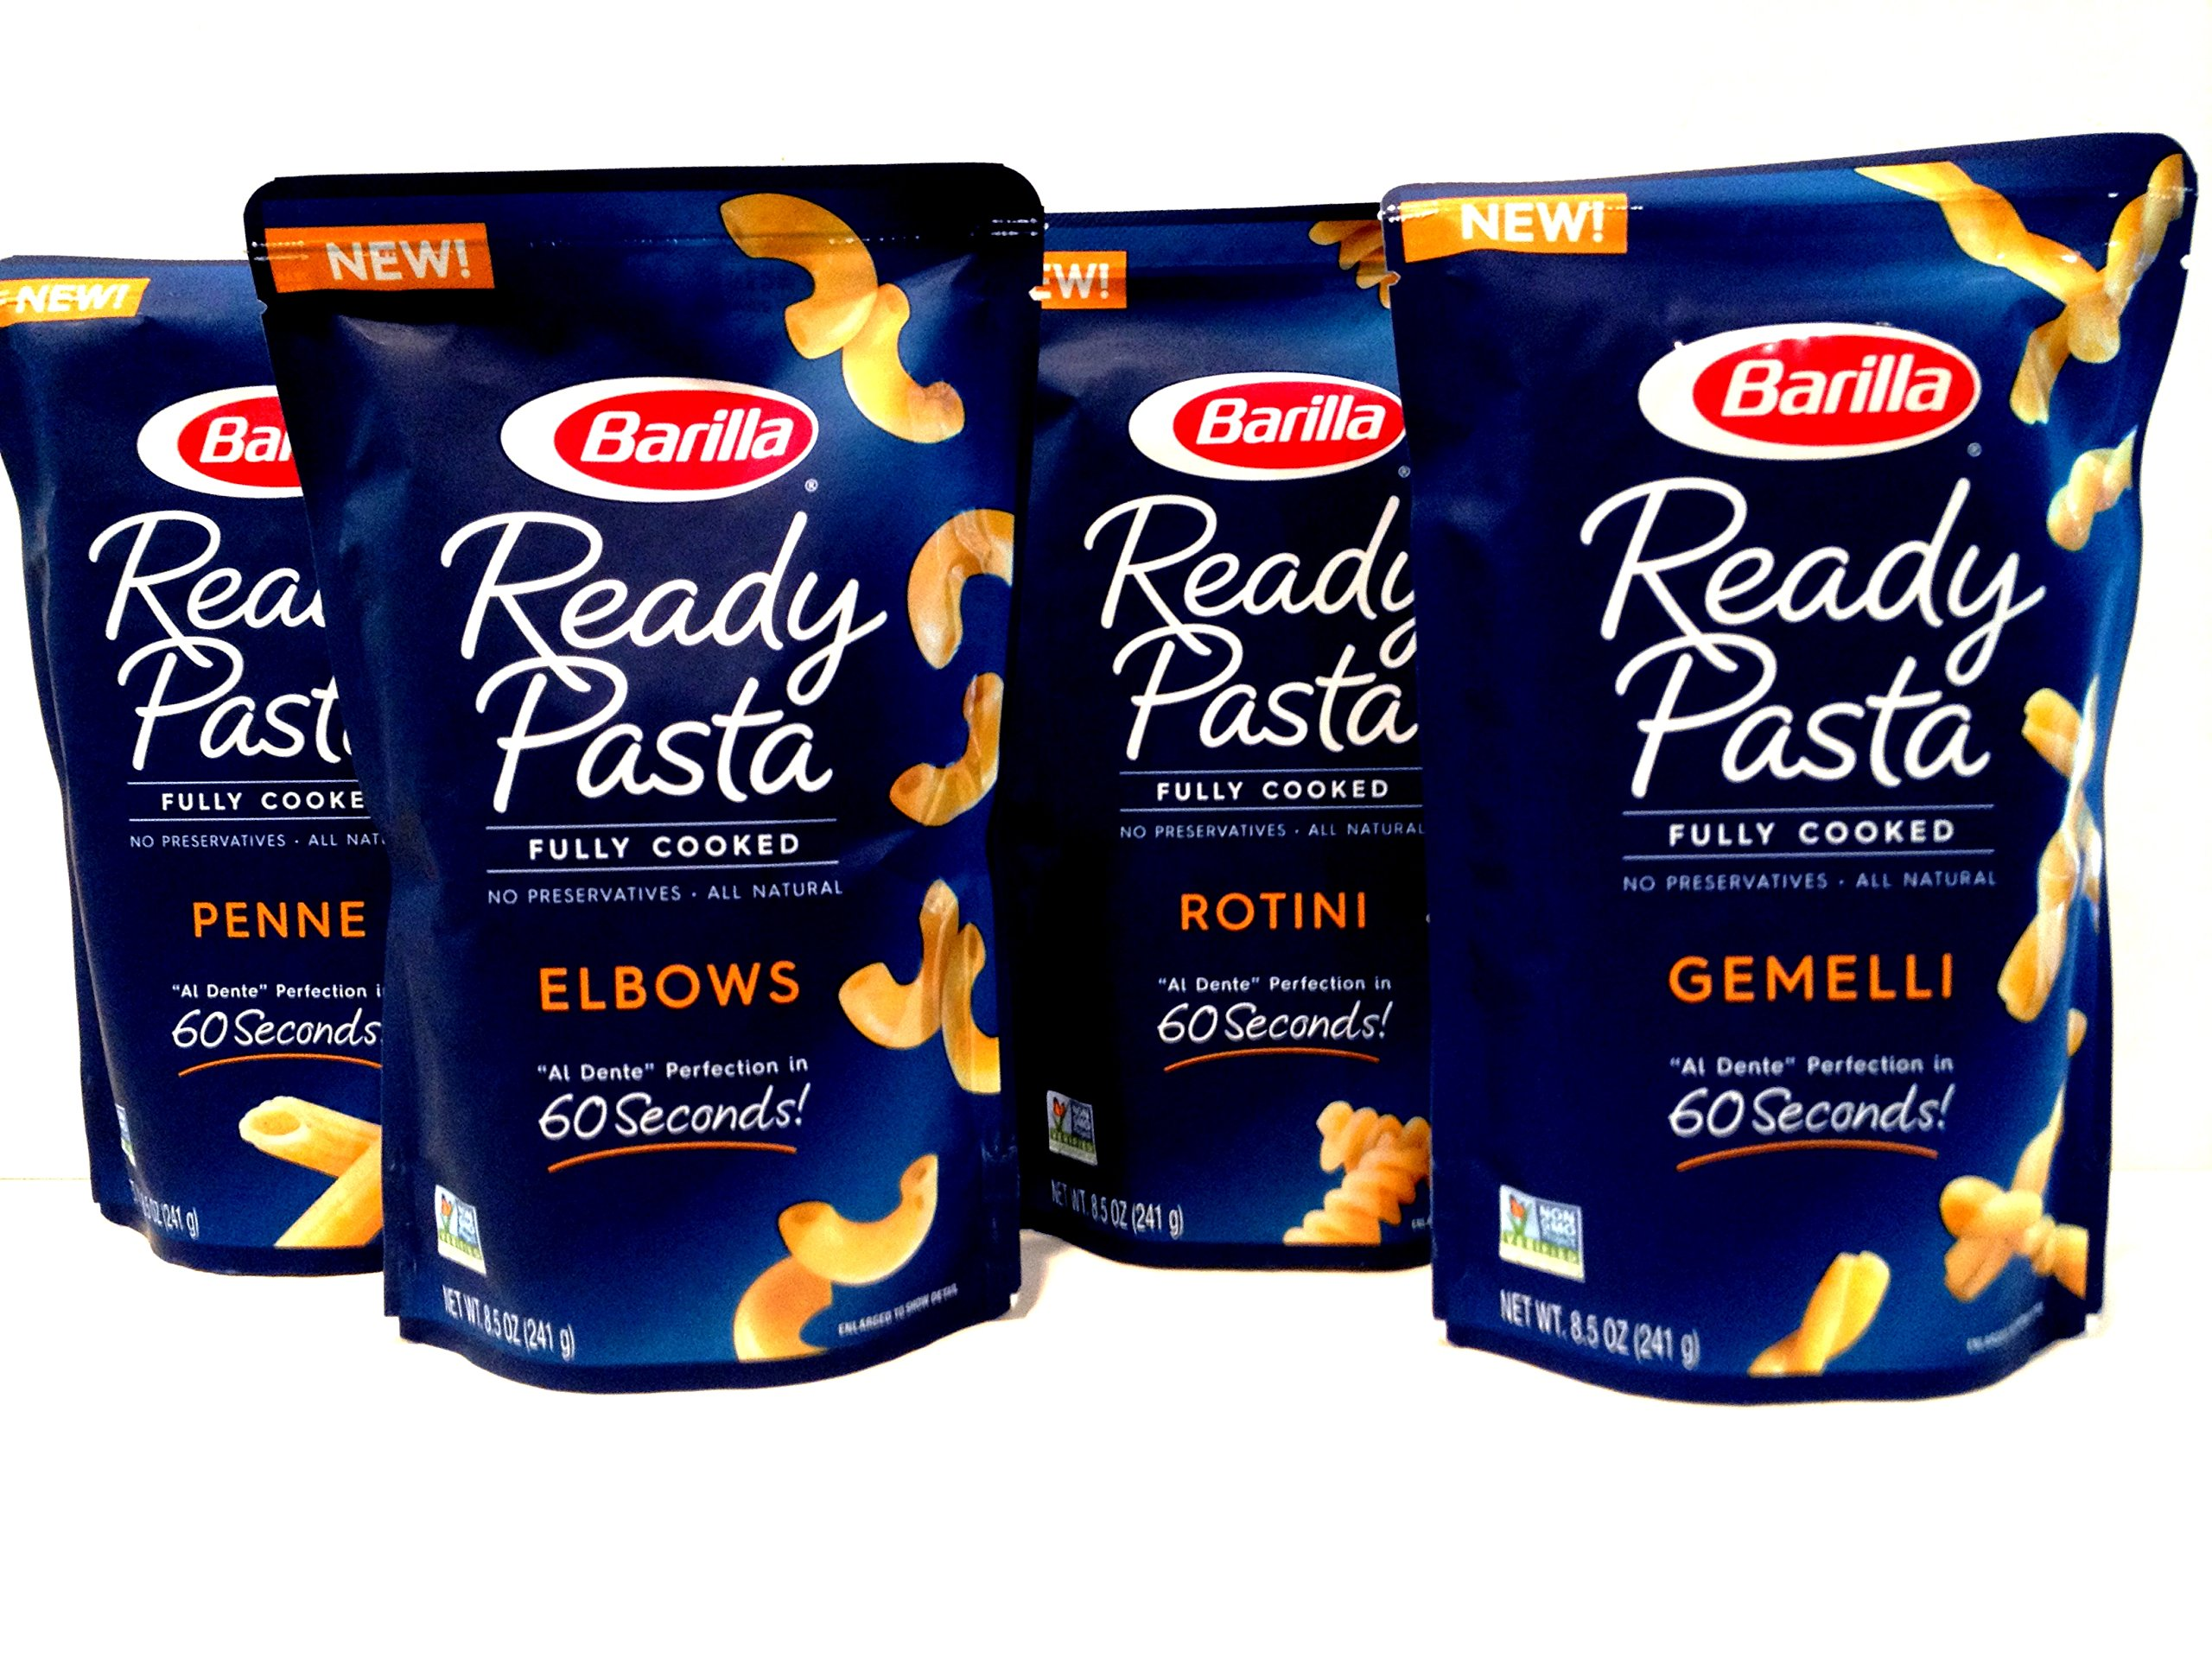 Barilla Fully Cooked READY PASTA, VARIETY 4 Pack: 1 Pouch each of ROTINI, PENNE, ELBOWS, GEMELLI with pack of silver plastic utensils! (8.5 oz each pouch) NEW for 2017!